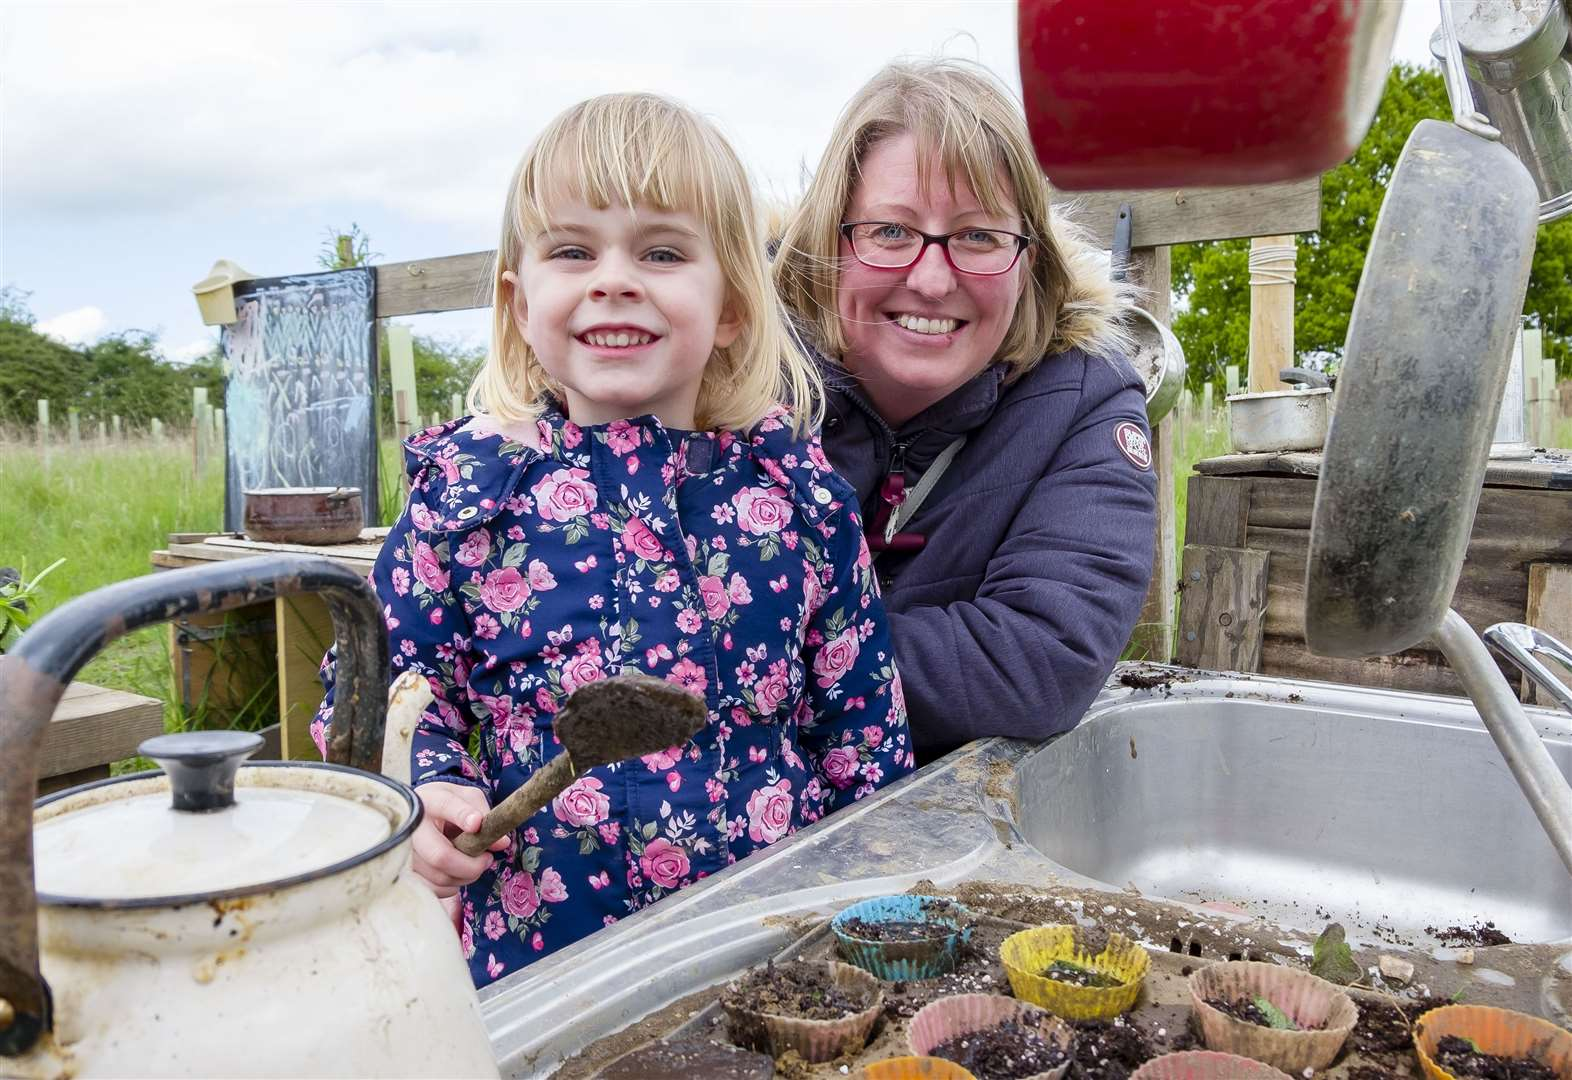 Fox Wood Forest School brims with new life